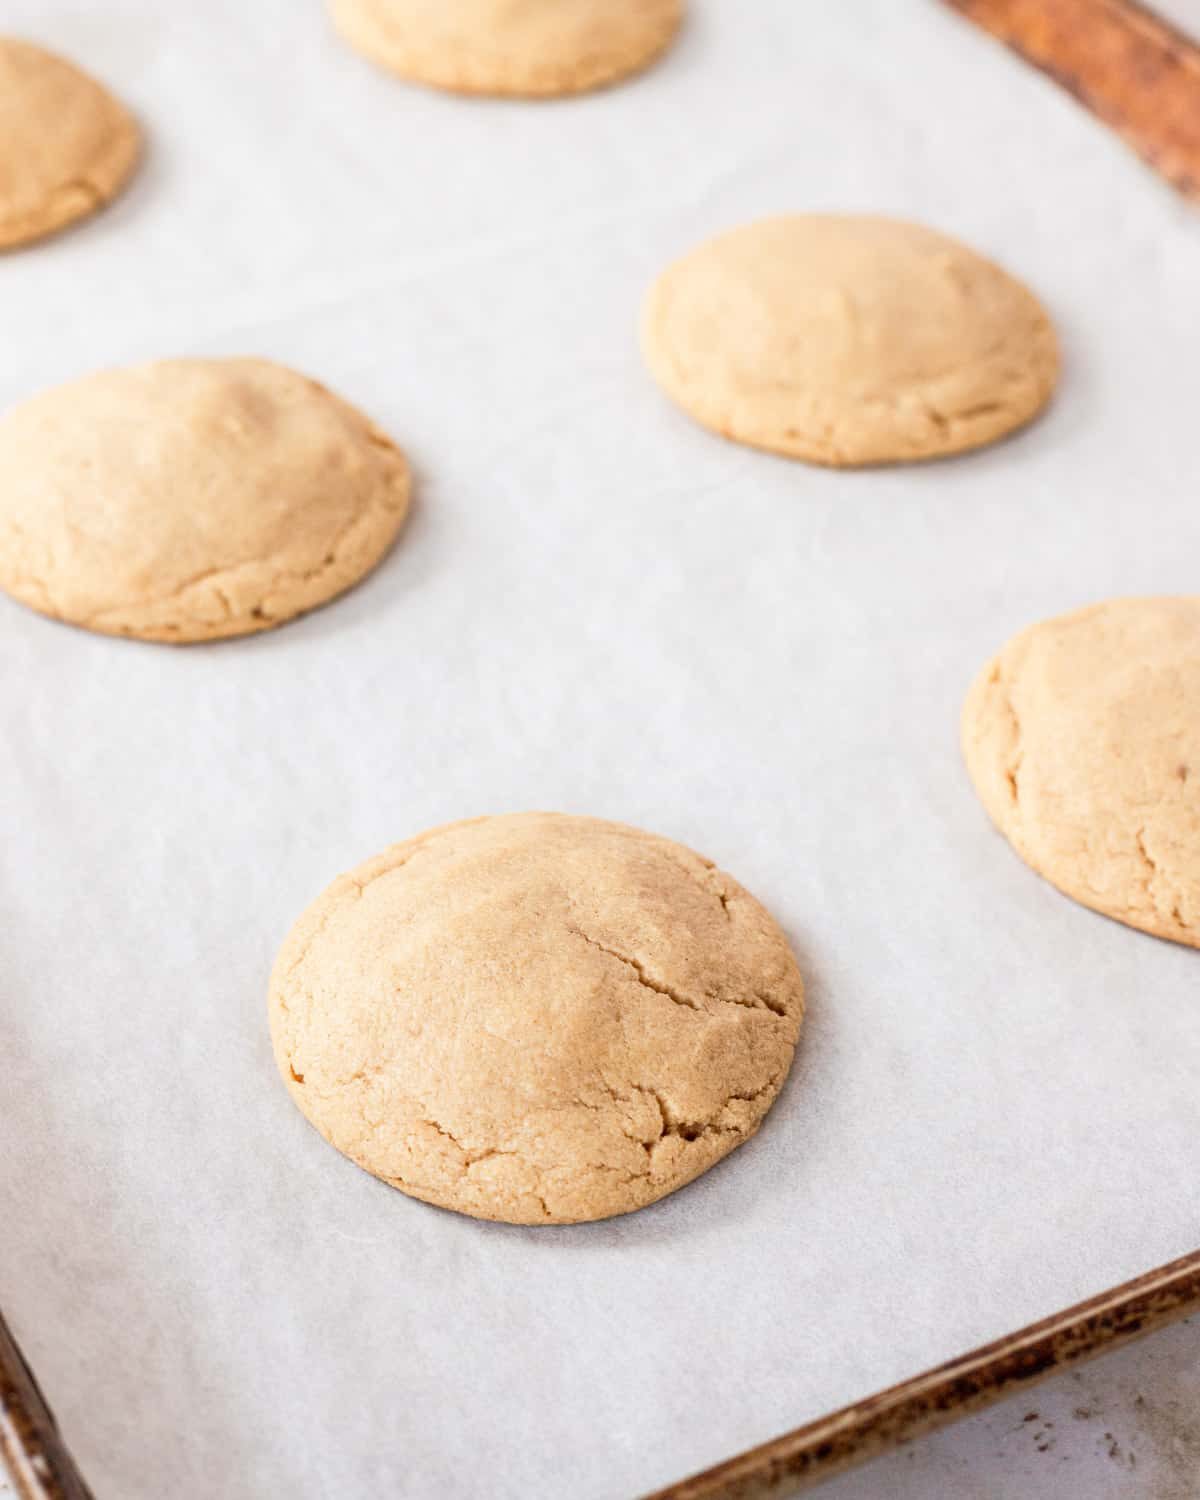 cookies after being baked on a cookie sheet